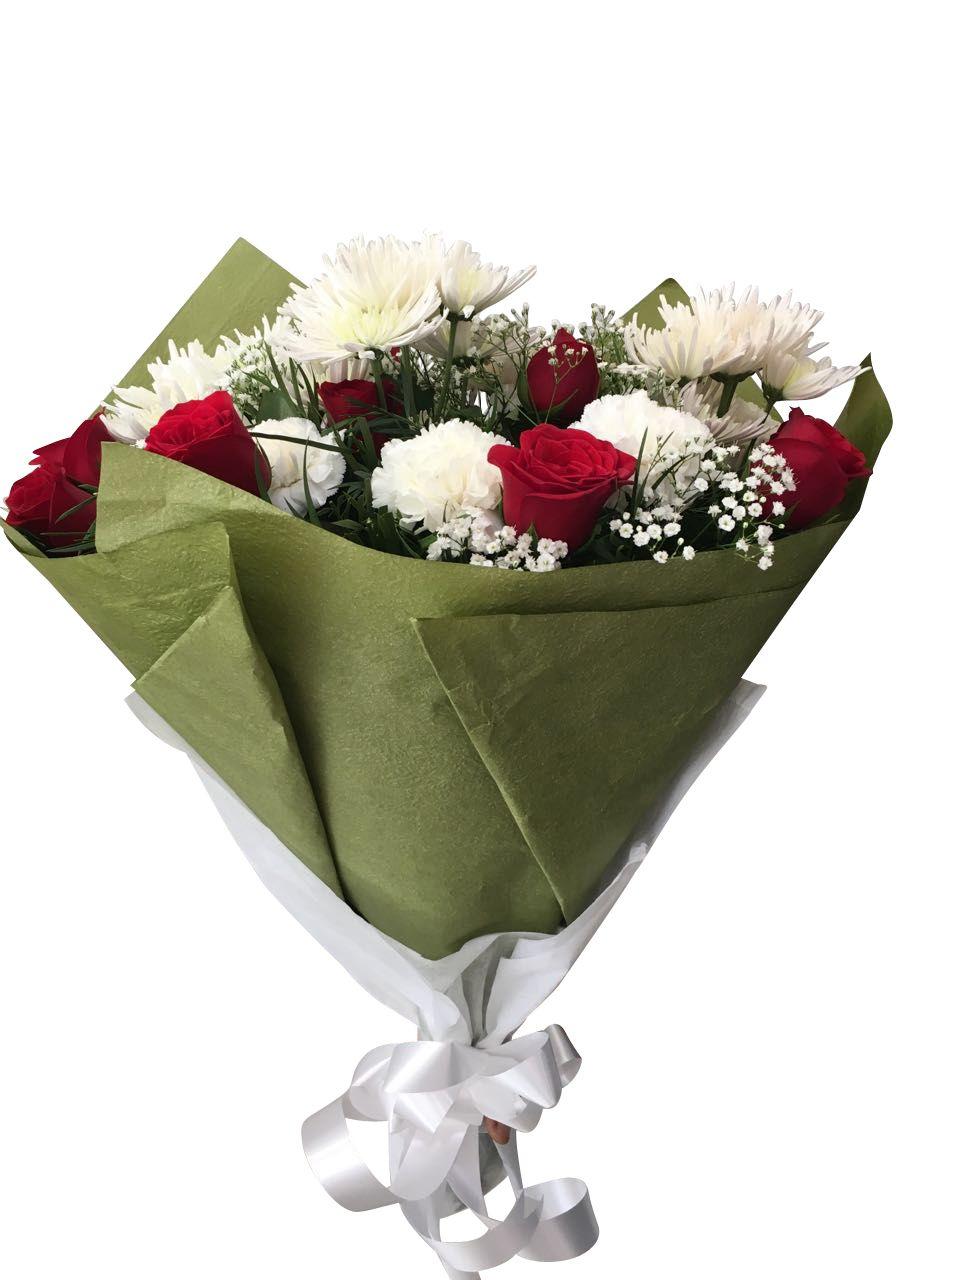 Winter flowers are a beautiful gift during the colder months winter flowers are a beautiful gift during the colder months arranged with fresh izmirmasajfo